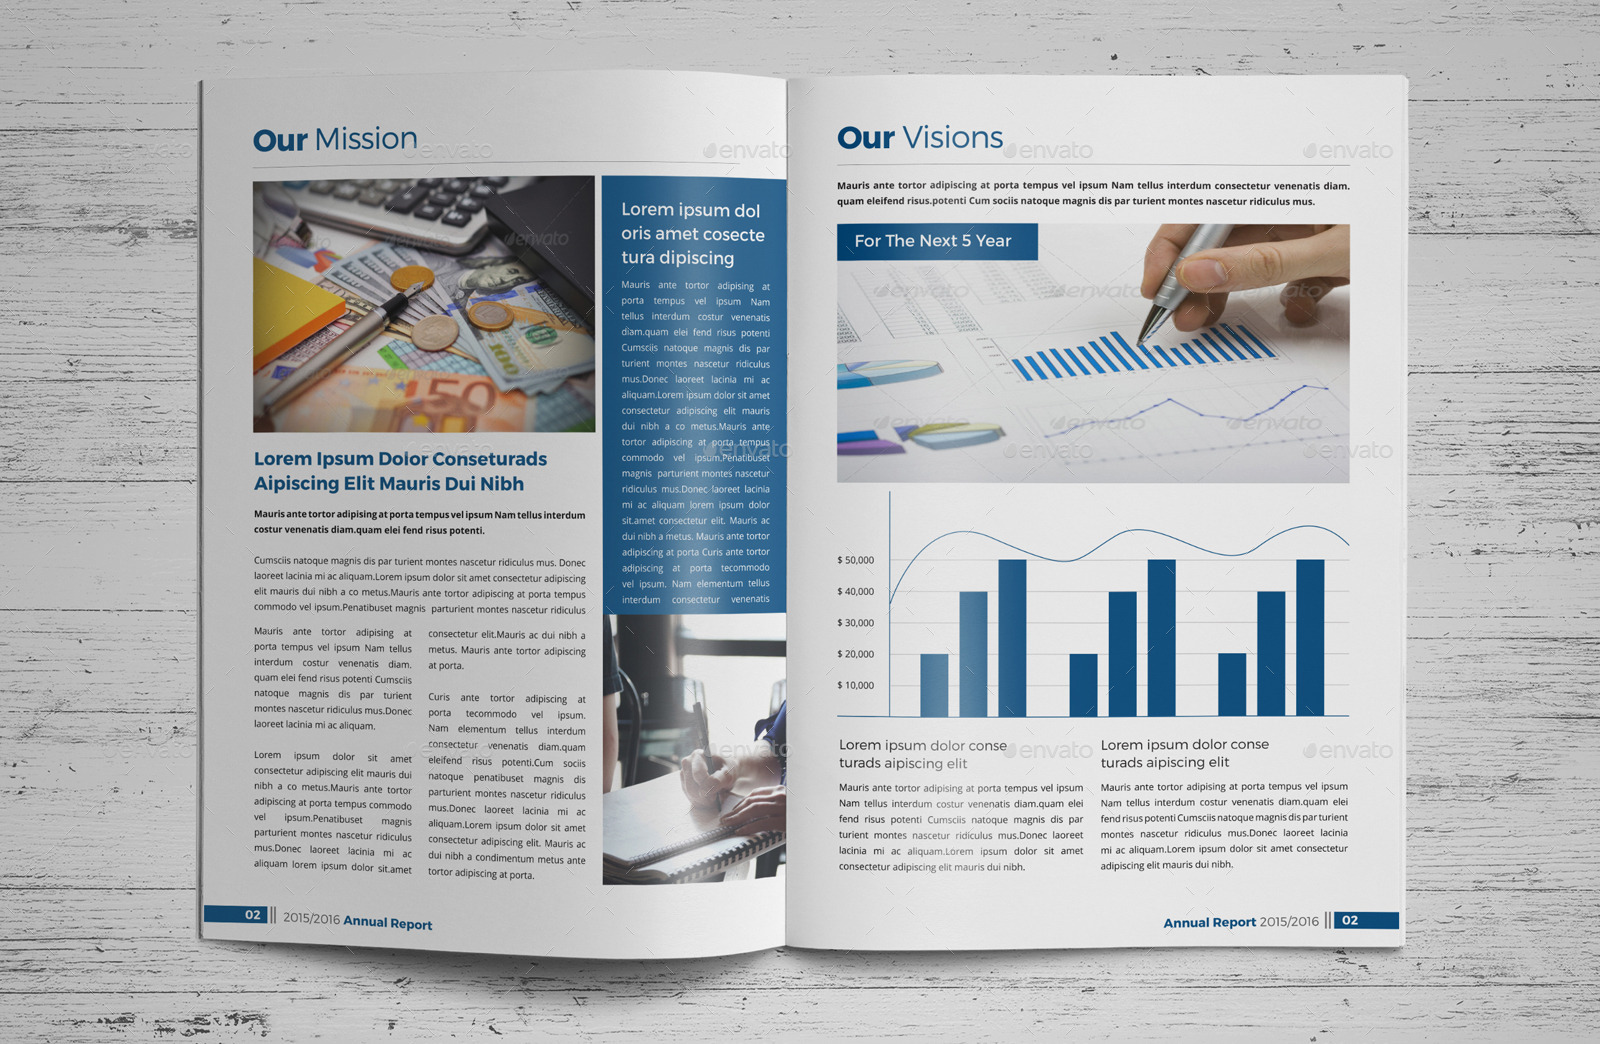 Annual Report Brochure Indesign Template 3 by JanySultana   GraphicRiver